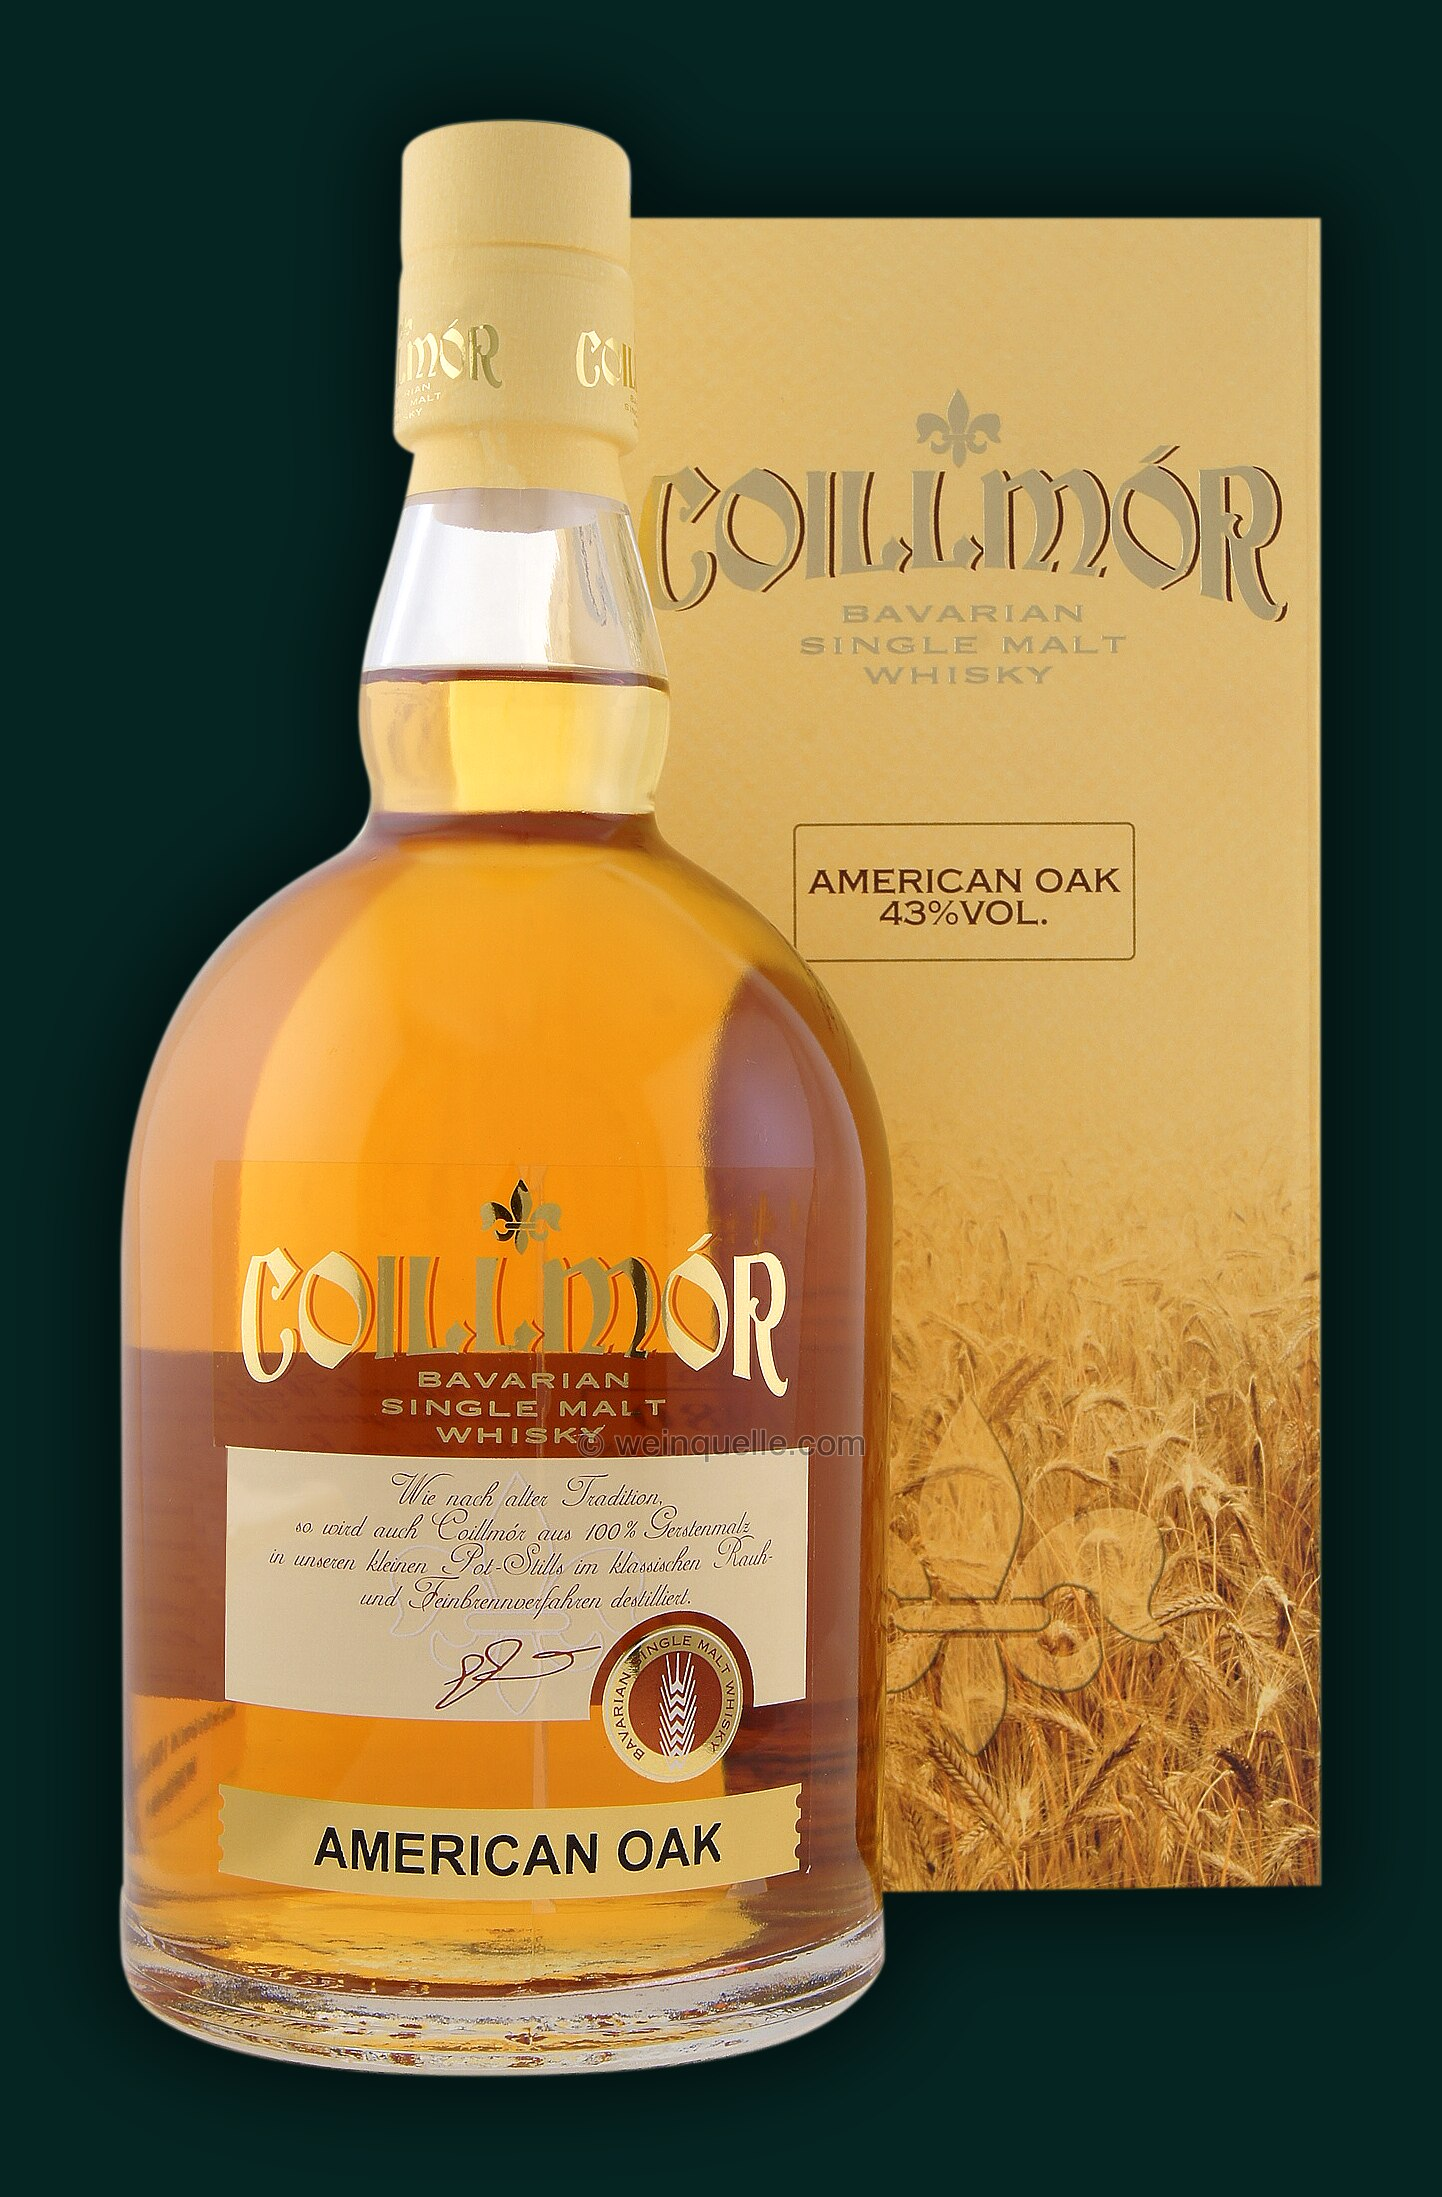 Coillmor bavarian single malt